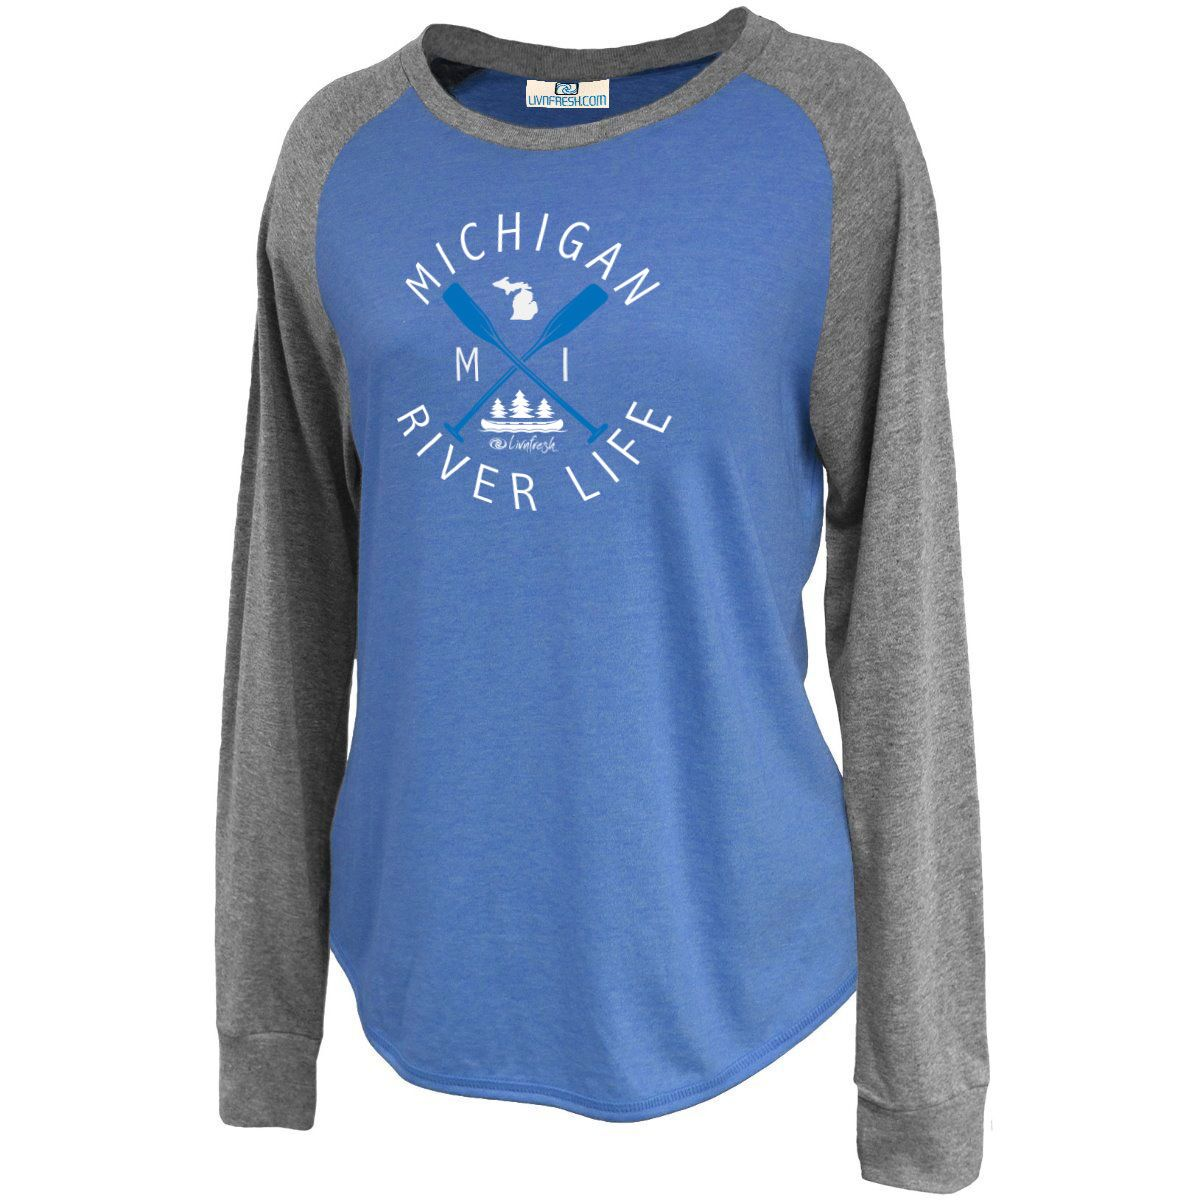 Michigan River Life Women's Raglan Jersey Crew